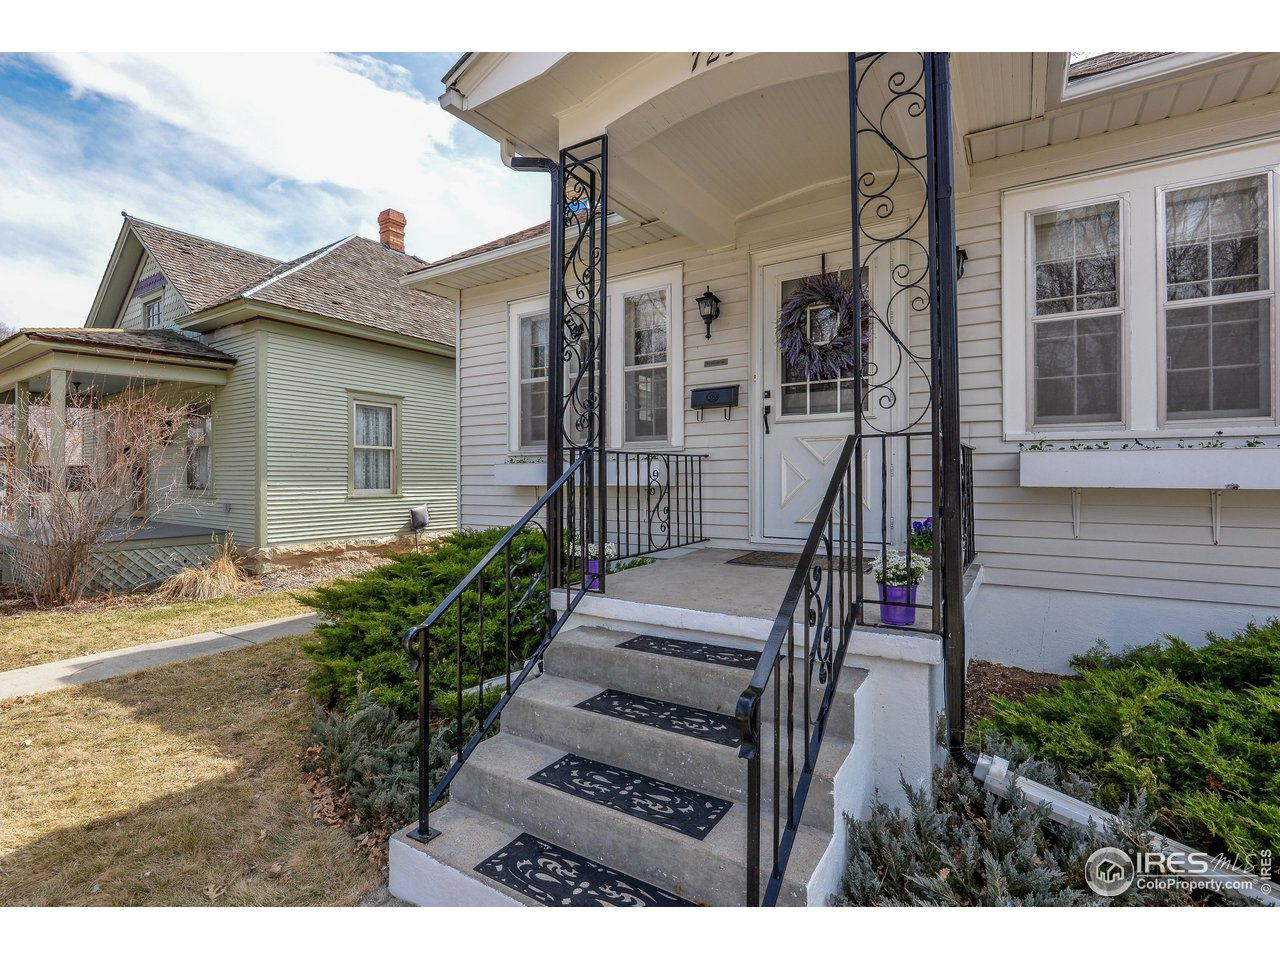 723 W Olive St, Fort Collins CO 80521